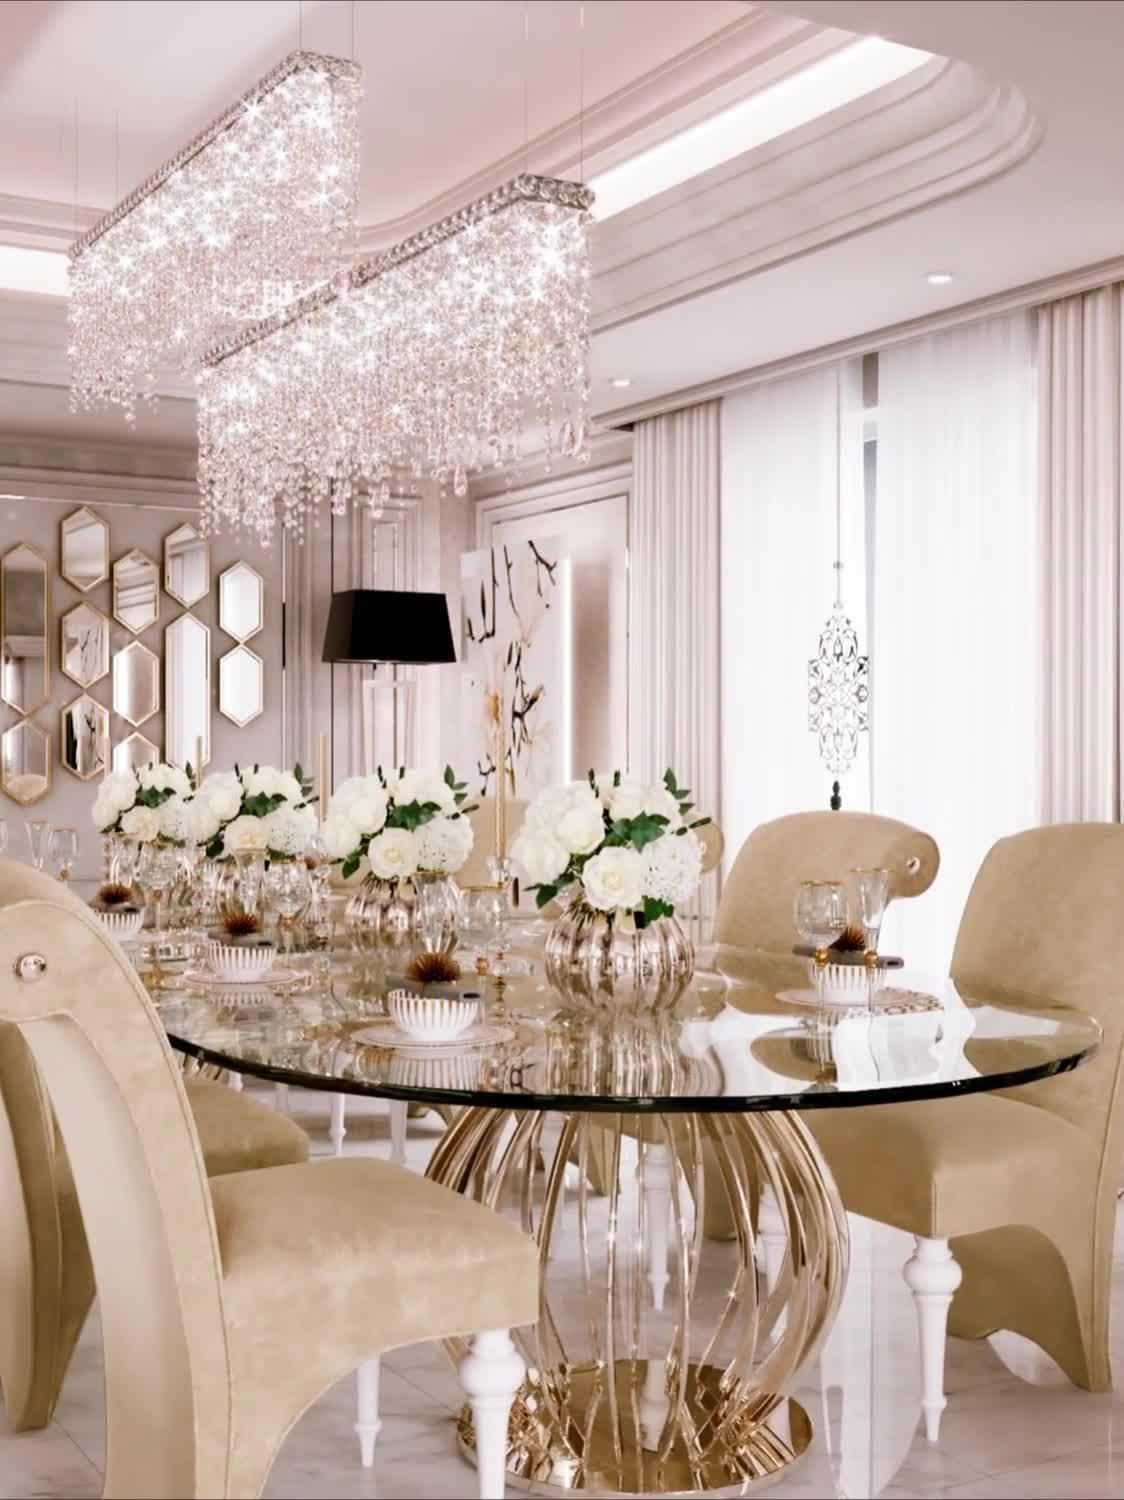 Photo of A Bespoke family dining room interior from Spazio decorators